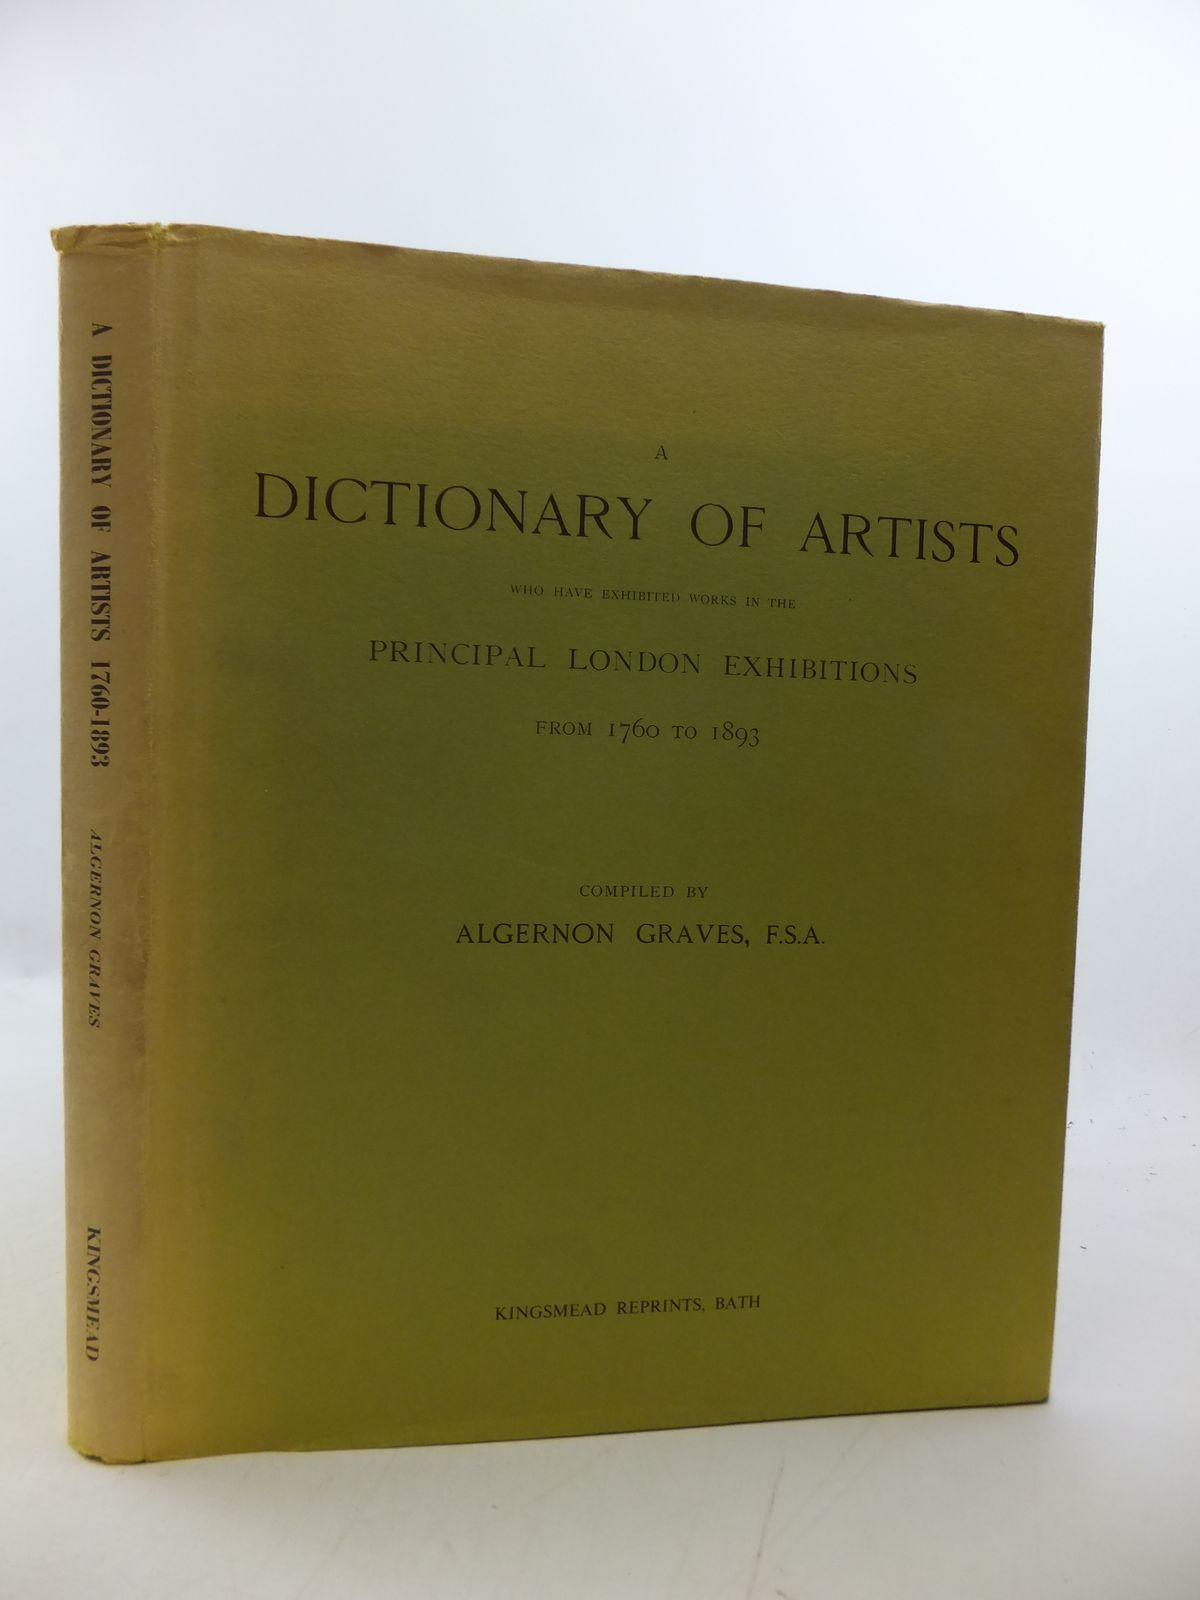 Photo of A DICTIONARY OF ARTISTS WHO HAVE EXHIBITED WORKS IN THE PRINCIPAL LONDON EXHIBITIONS FROM 1760 TO 1893 written by Graves, Algernon published by Kingsmead Reprints (STOCK CODE: 1808495)  for sale by Stella & Rose's Books